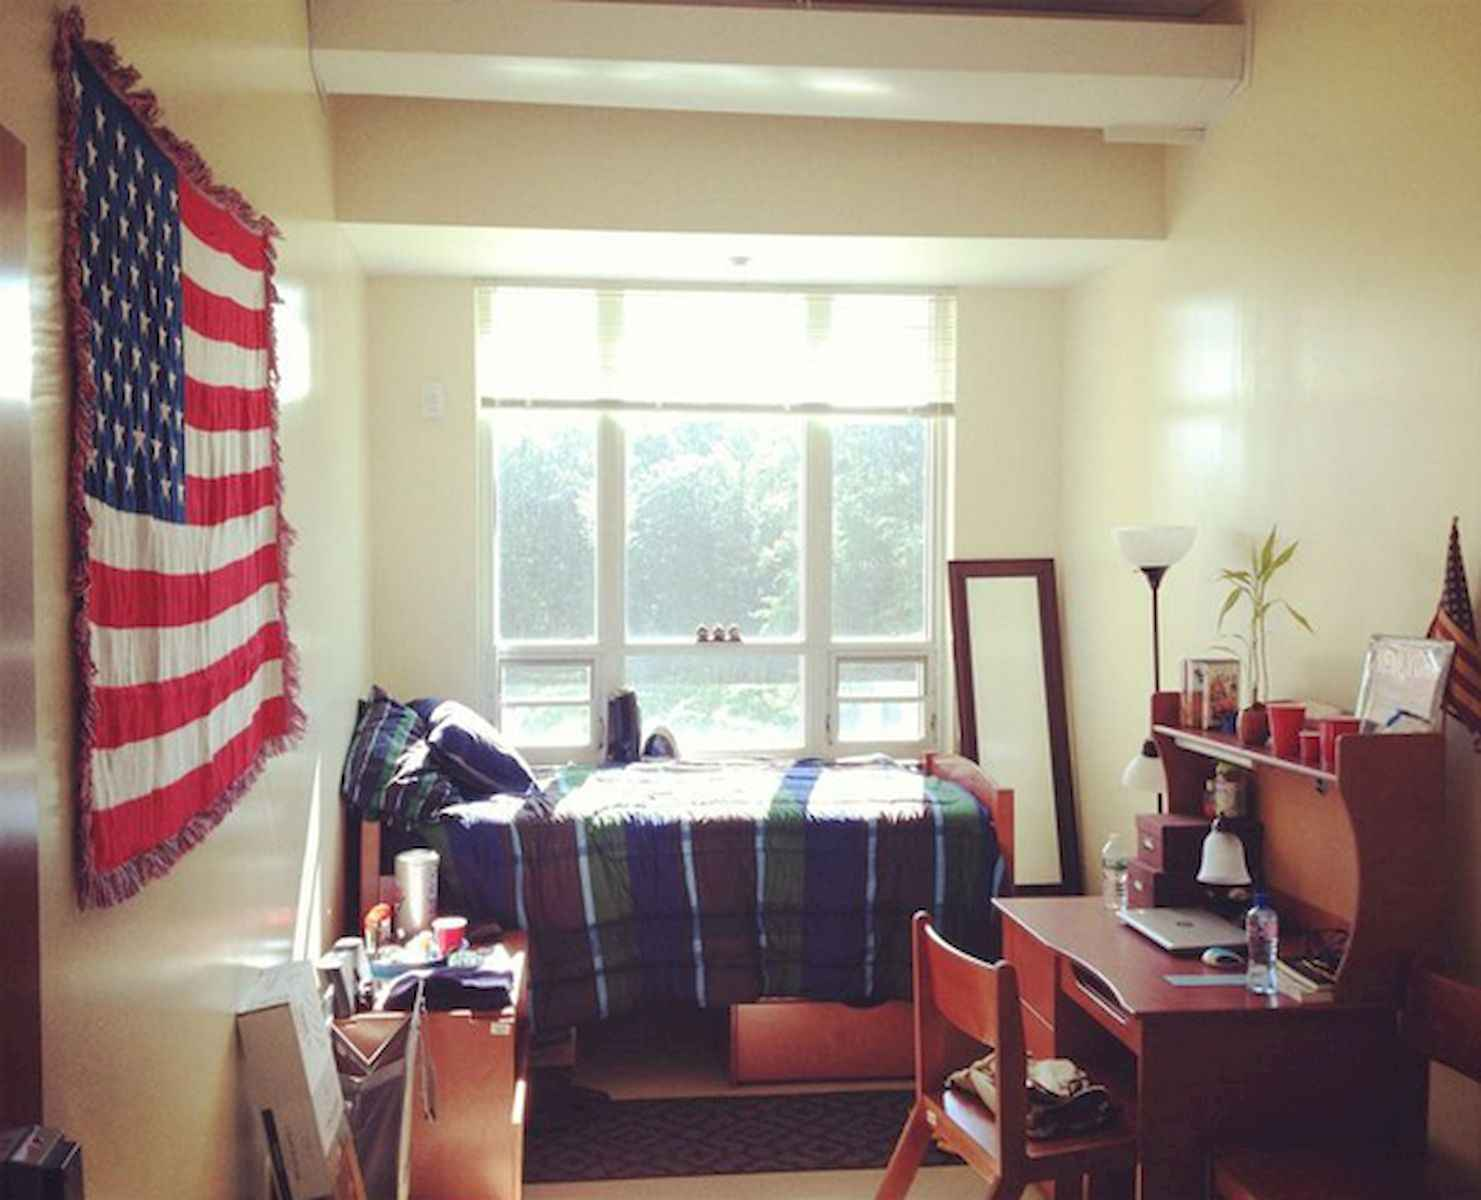 60 Gorgeous College Dorm Room Decorating Ideas And Makeover (10)